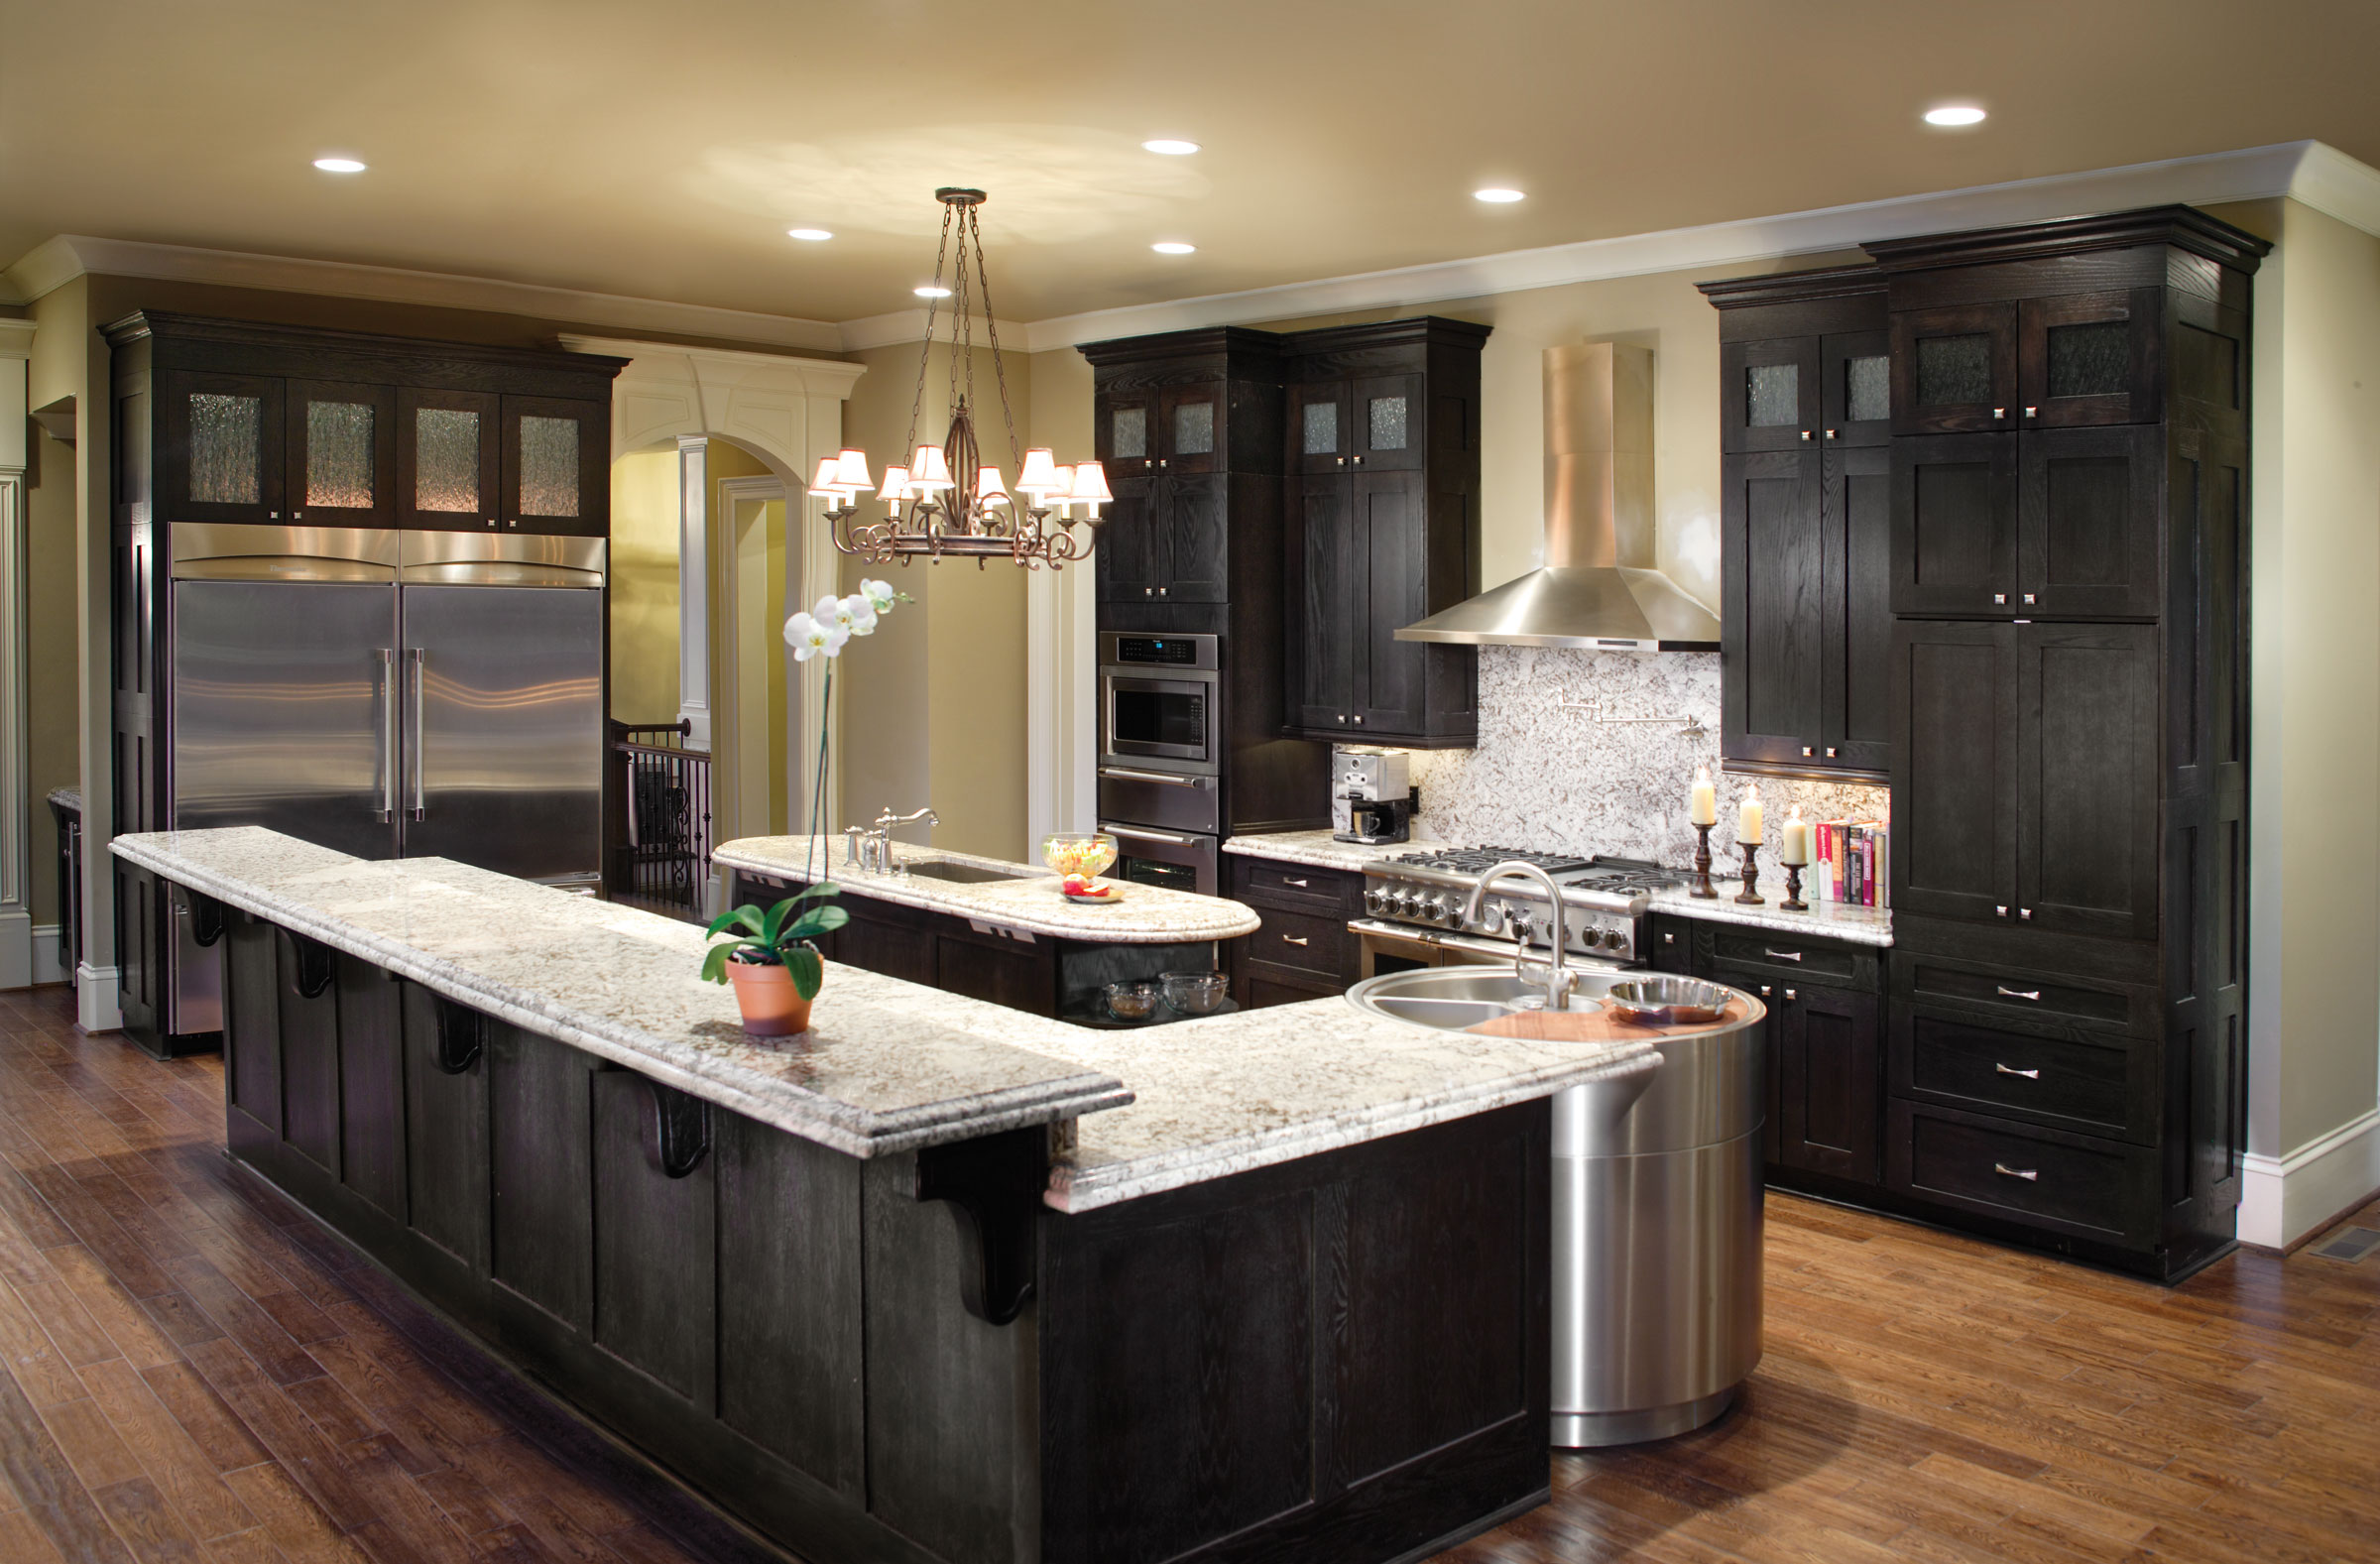 cabinetsbydesignaz kitchen cabinets Custom Kitchen Bathroom Cabinets Company in Phoenix AZ Cabinet Maker